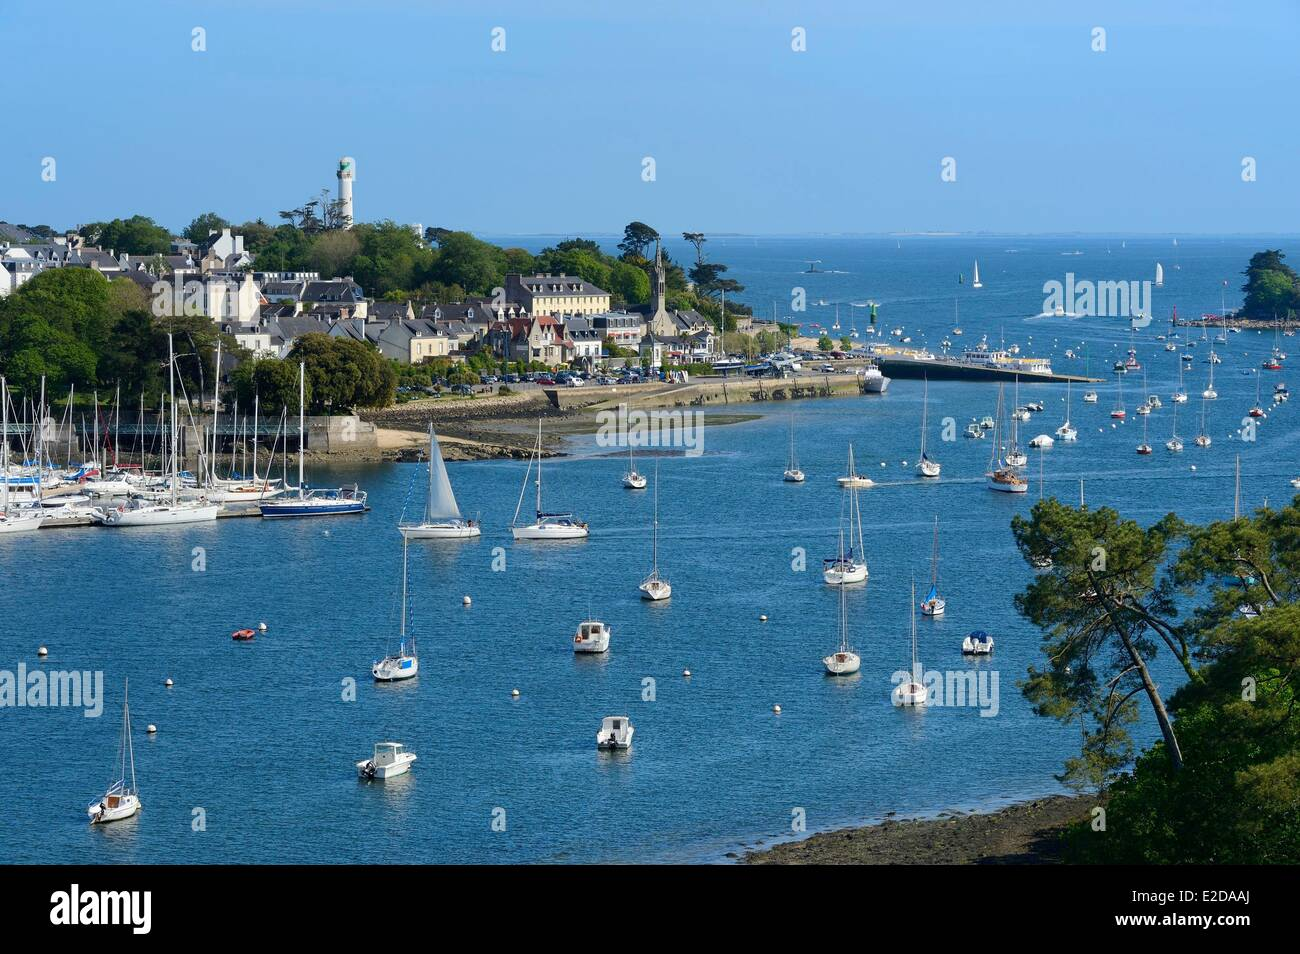 France, Finistere, Benodet and anchorage on the Odet river estuary - Stock Image